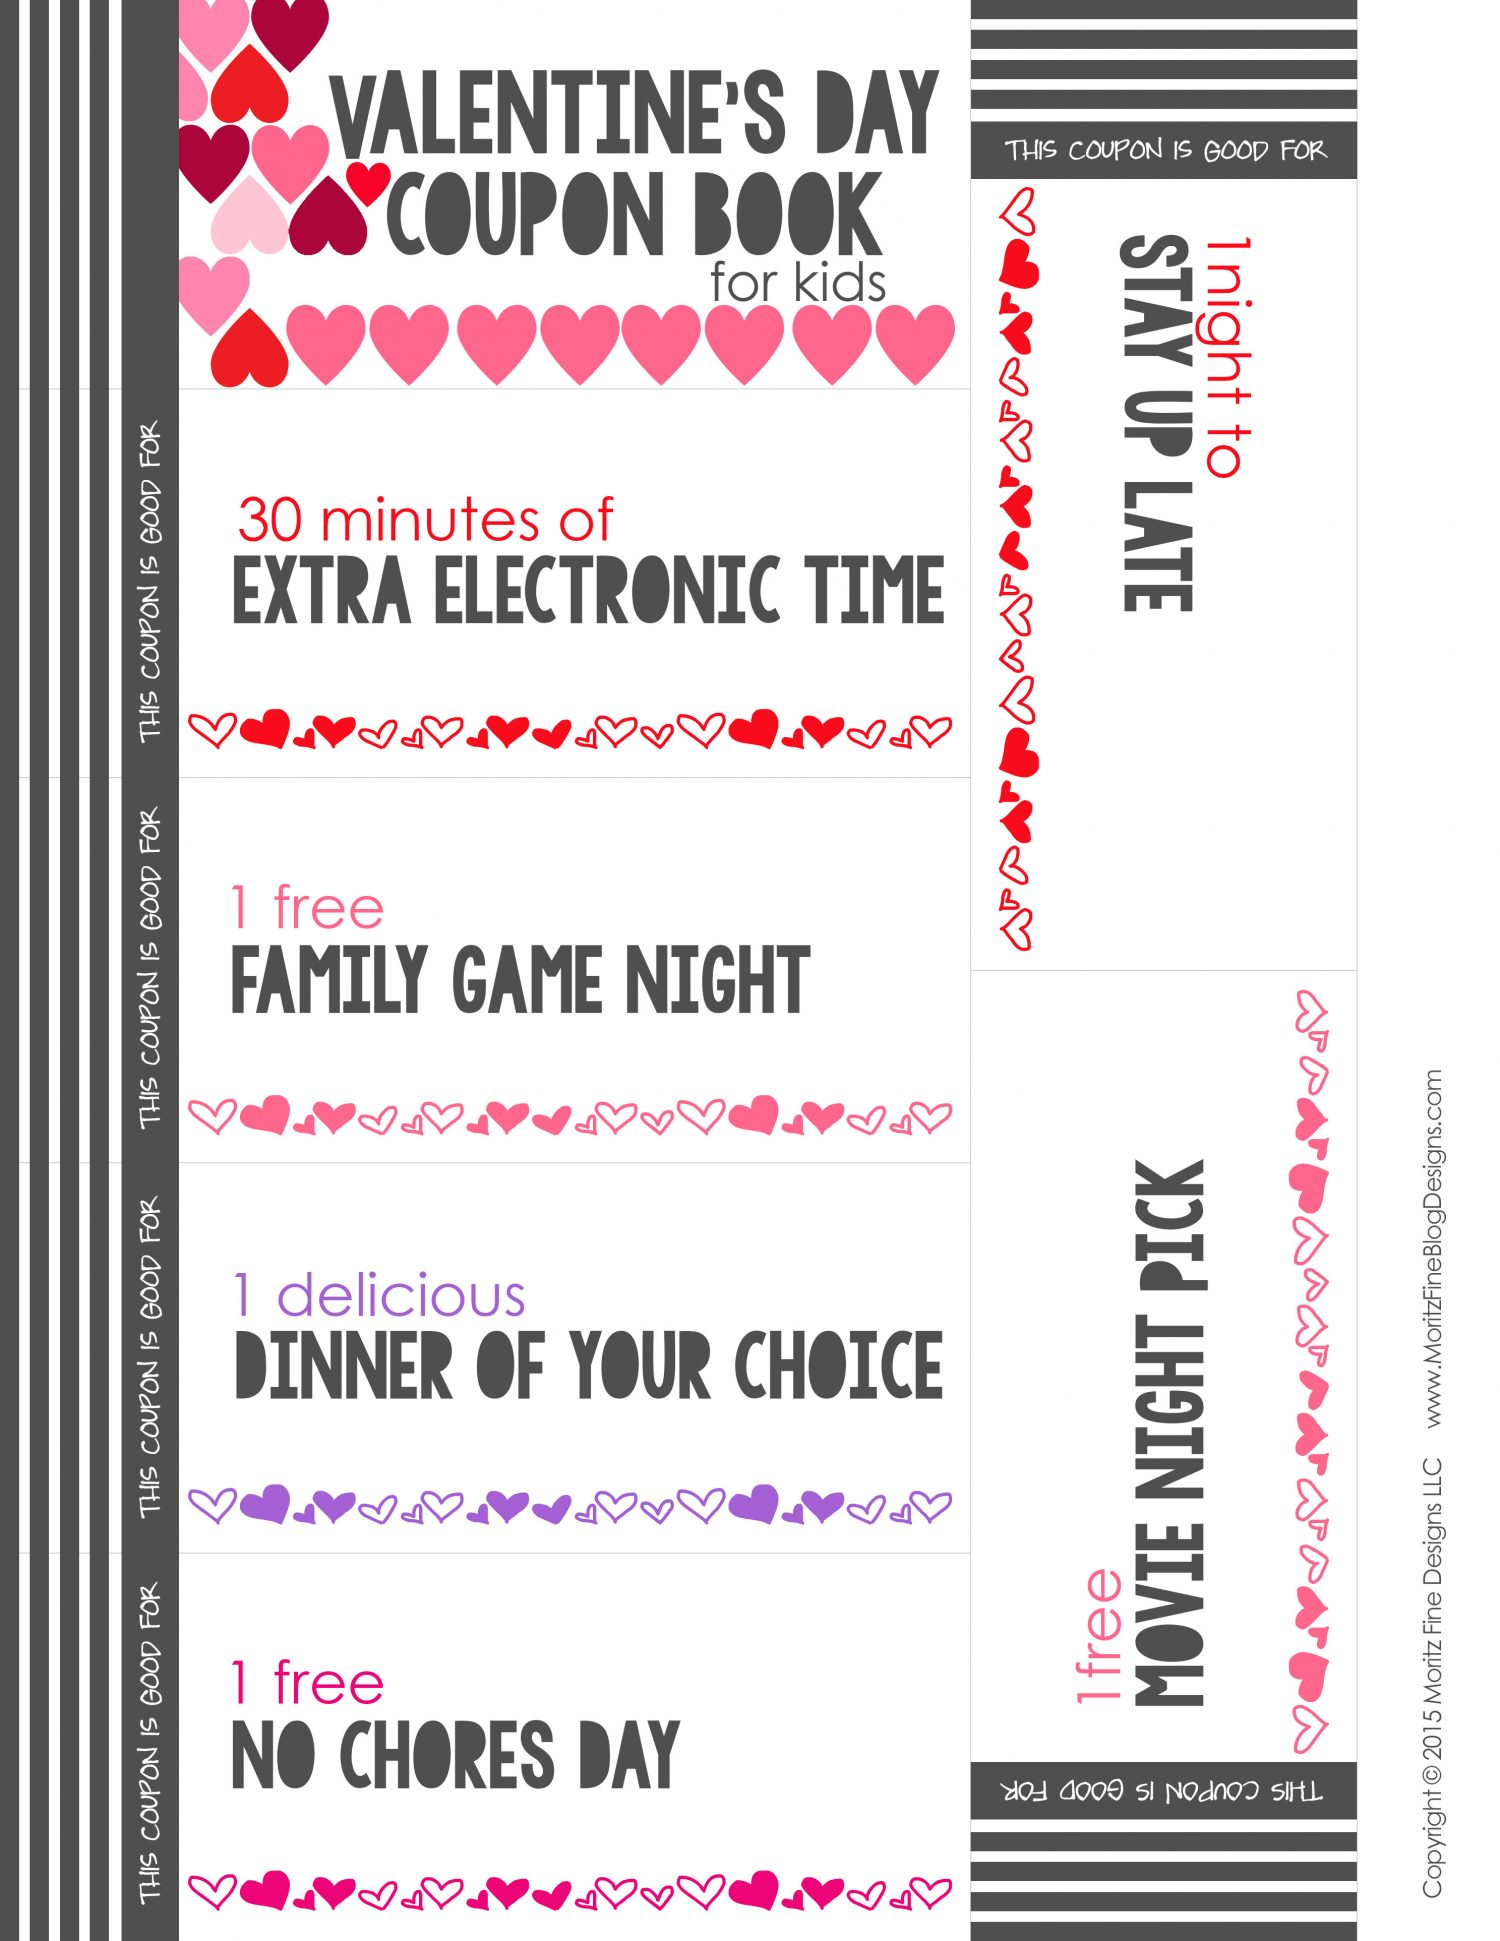 Valentines Day Coupon Book For Kids Free Printable